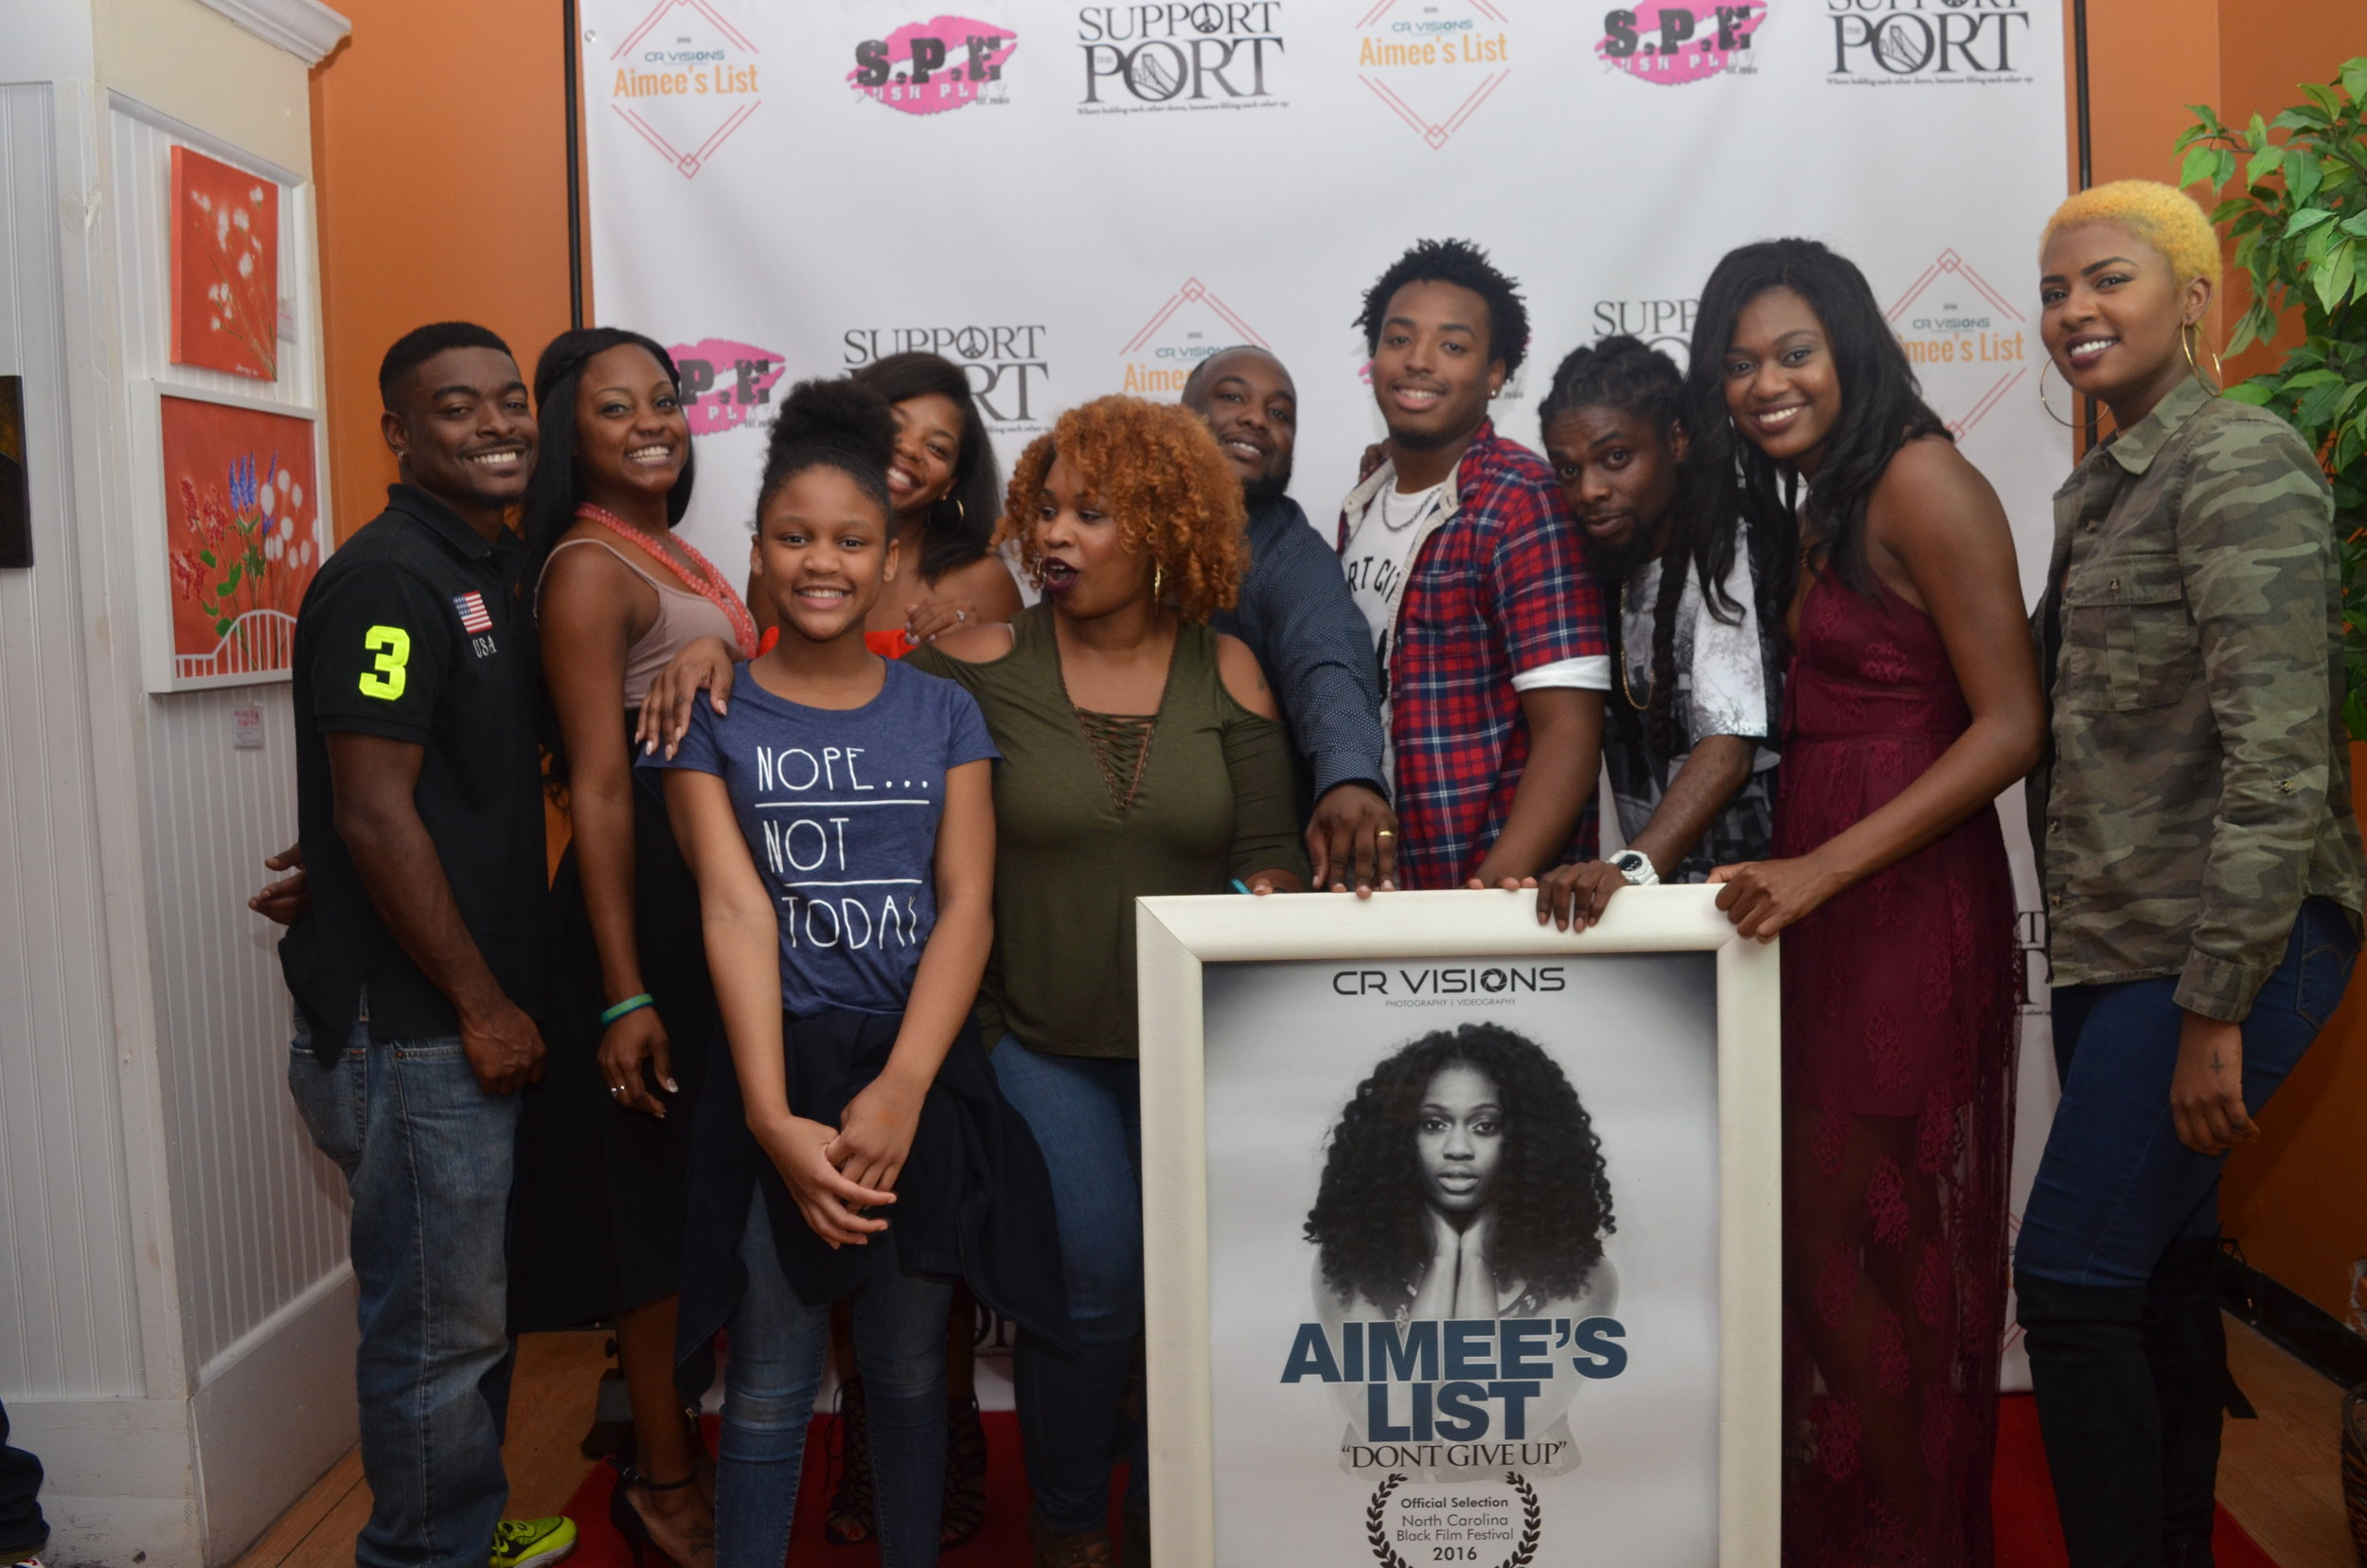 The Cast & Crew of Aimee's List Having a Good Time During Support The Port's Supportflix And Chill Red Carpet Premiere for Aimee's Lis